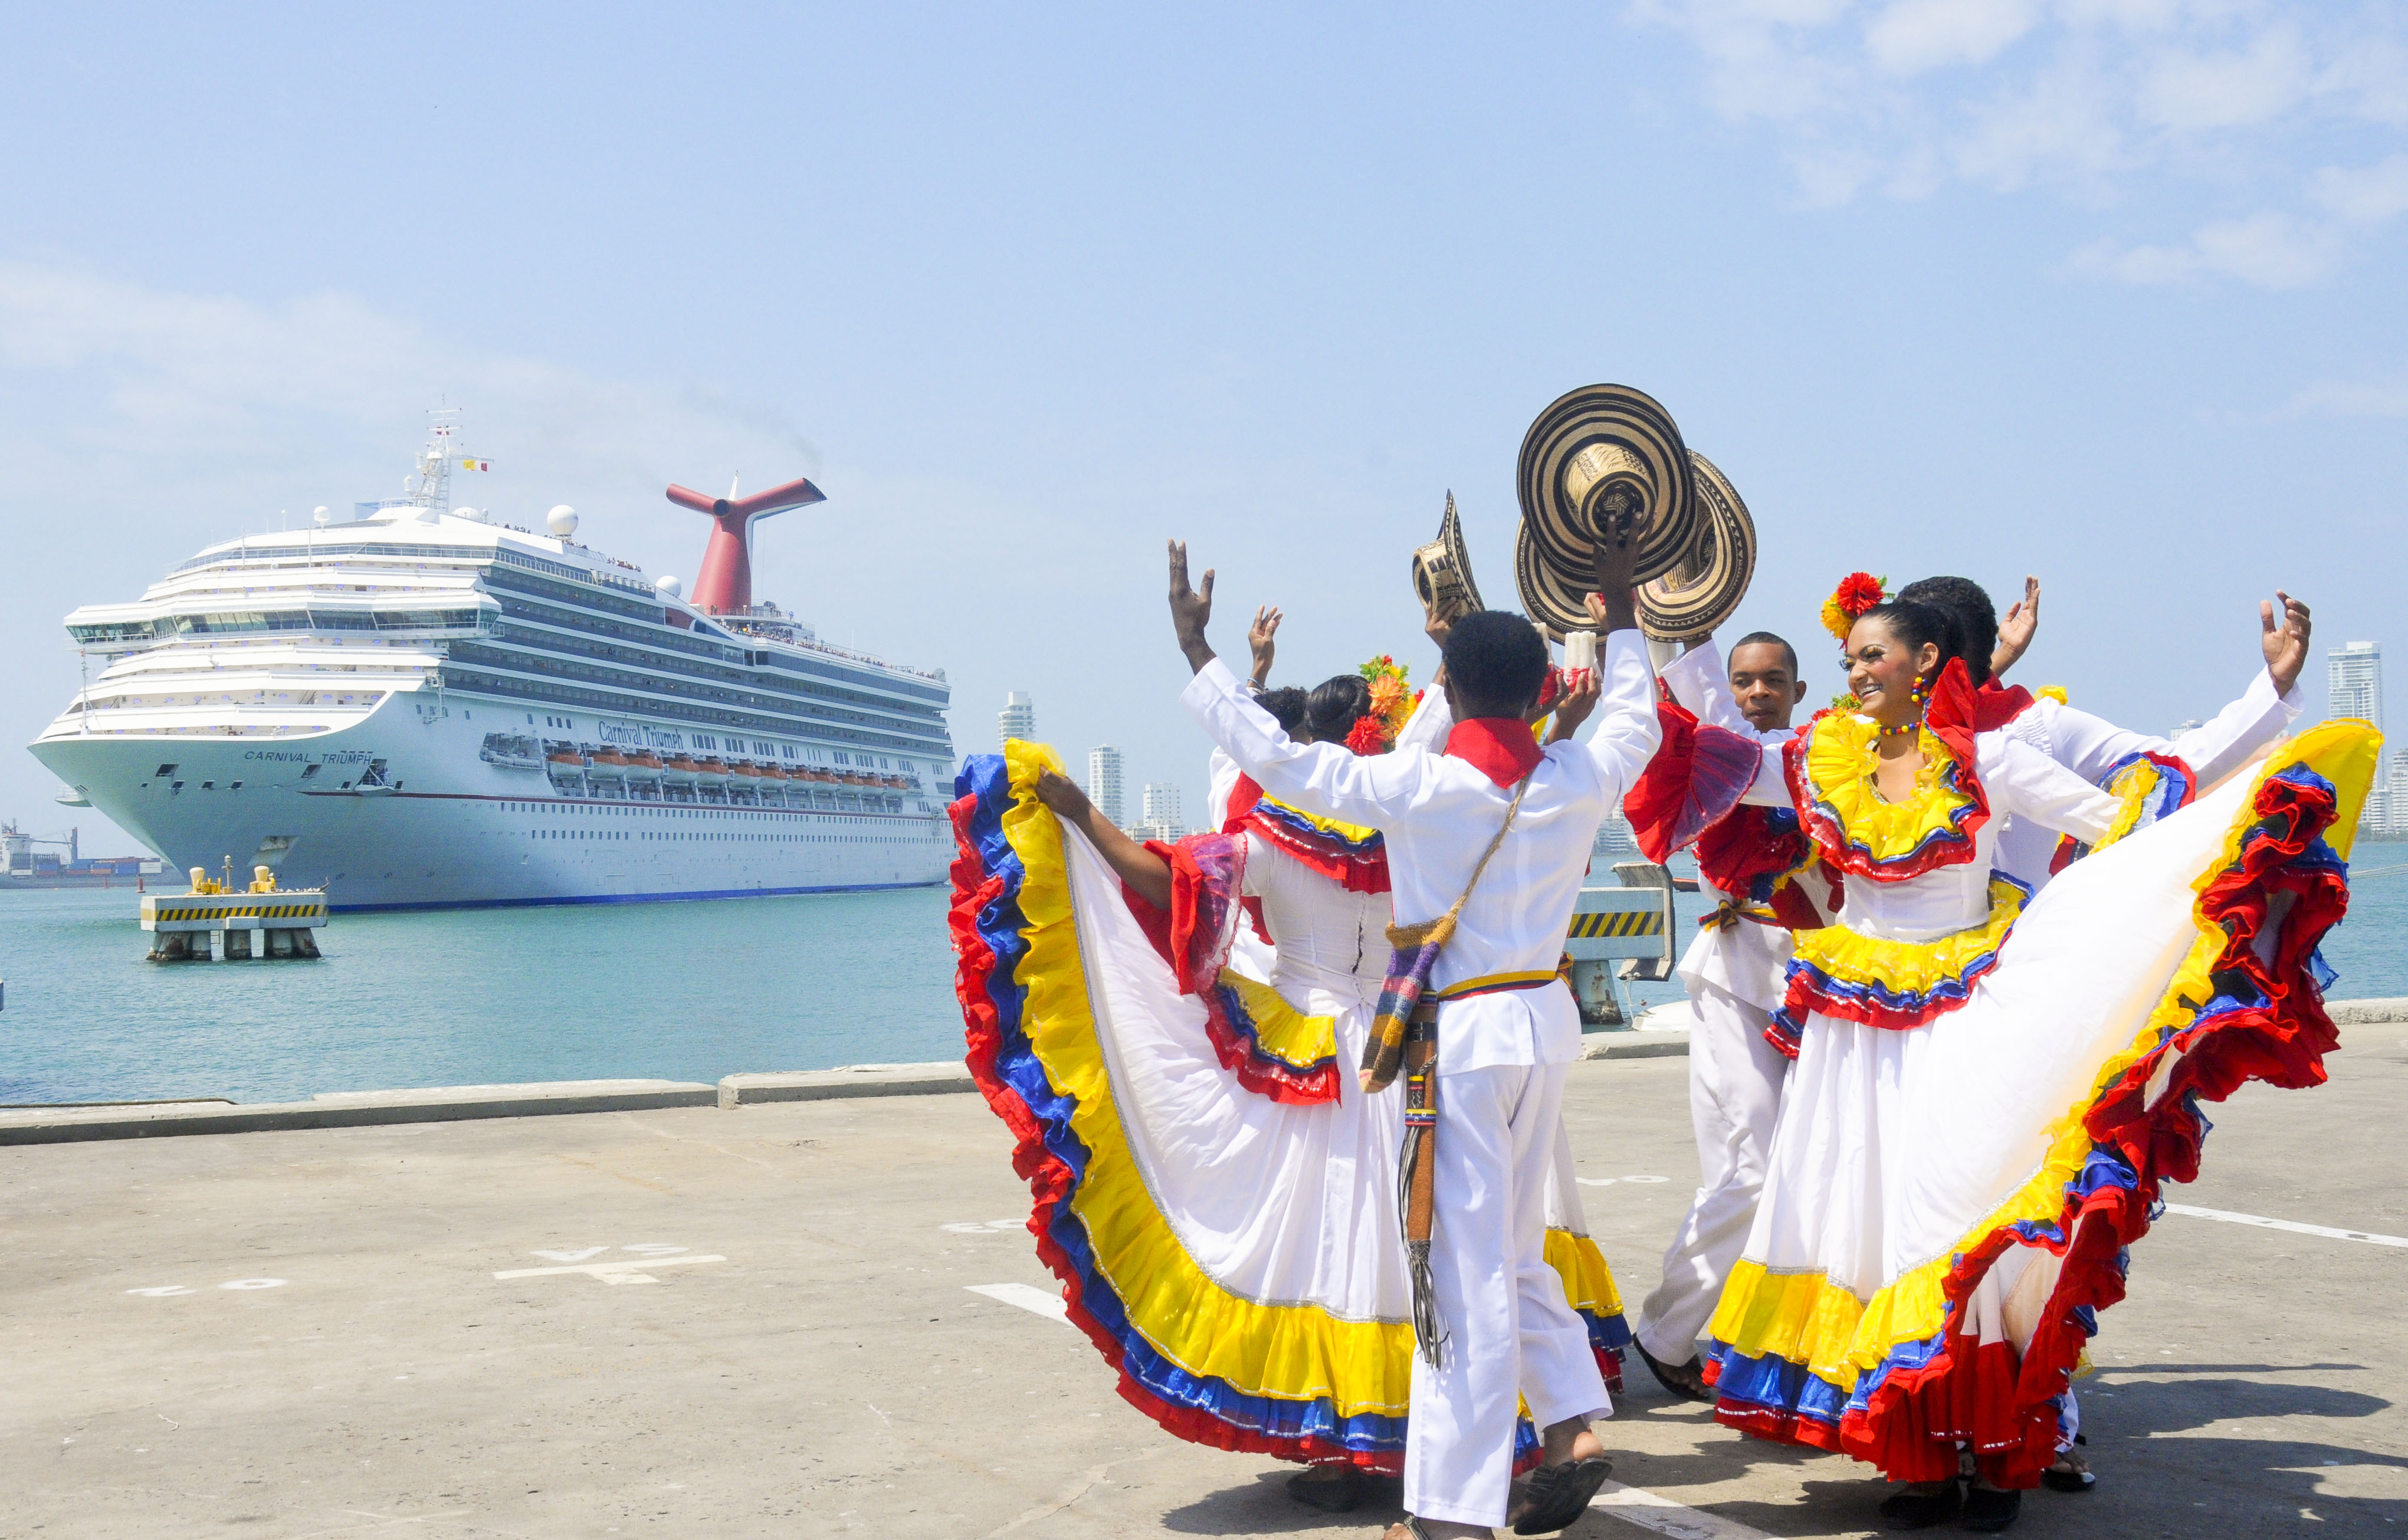 97 per cent of passengers who enter the country by sea - around 500,000 each season - do so through the Cartagena Terminal.